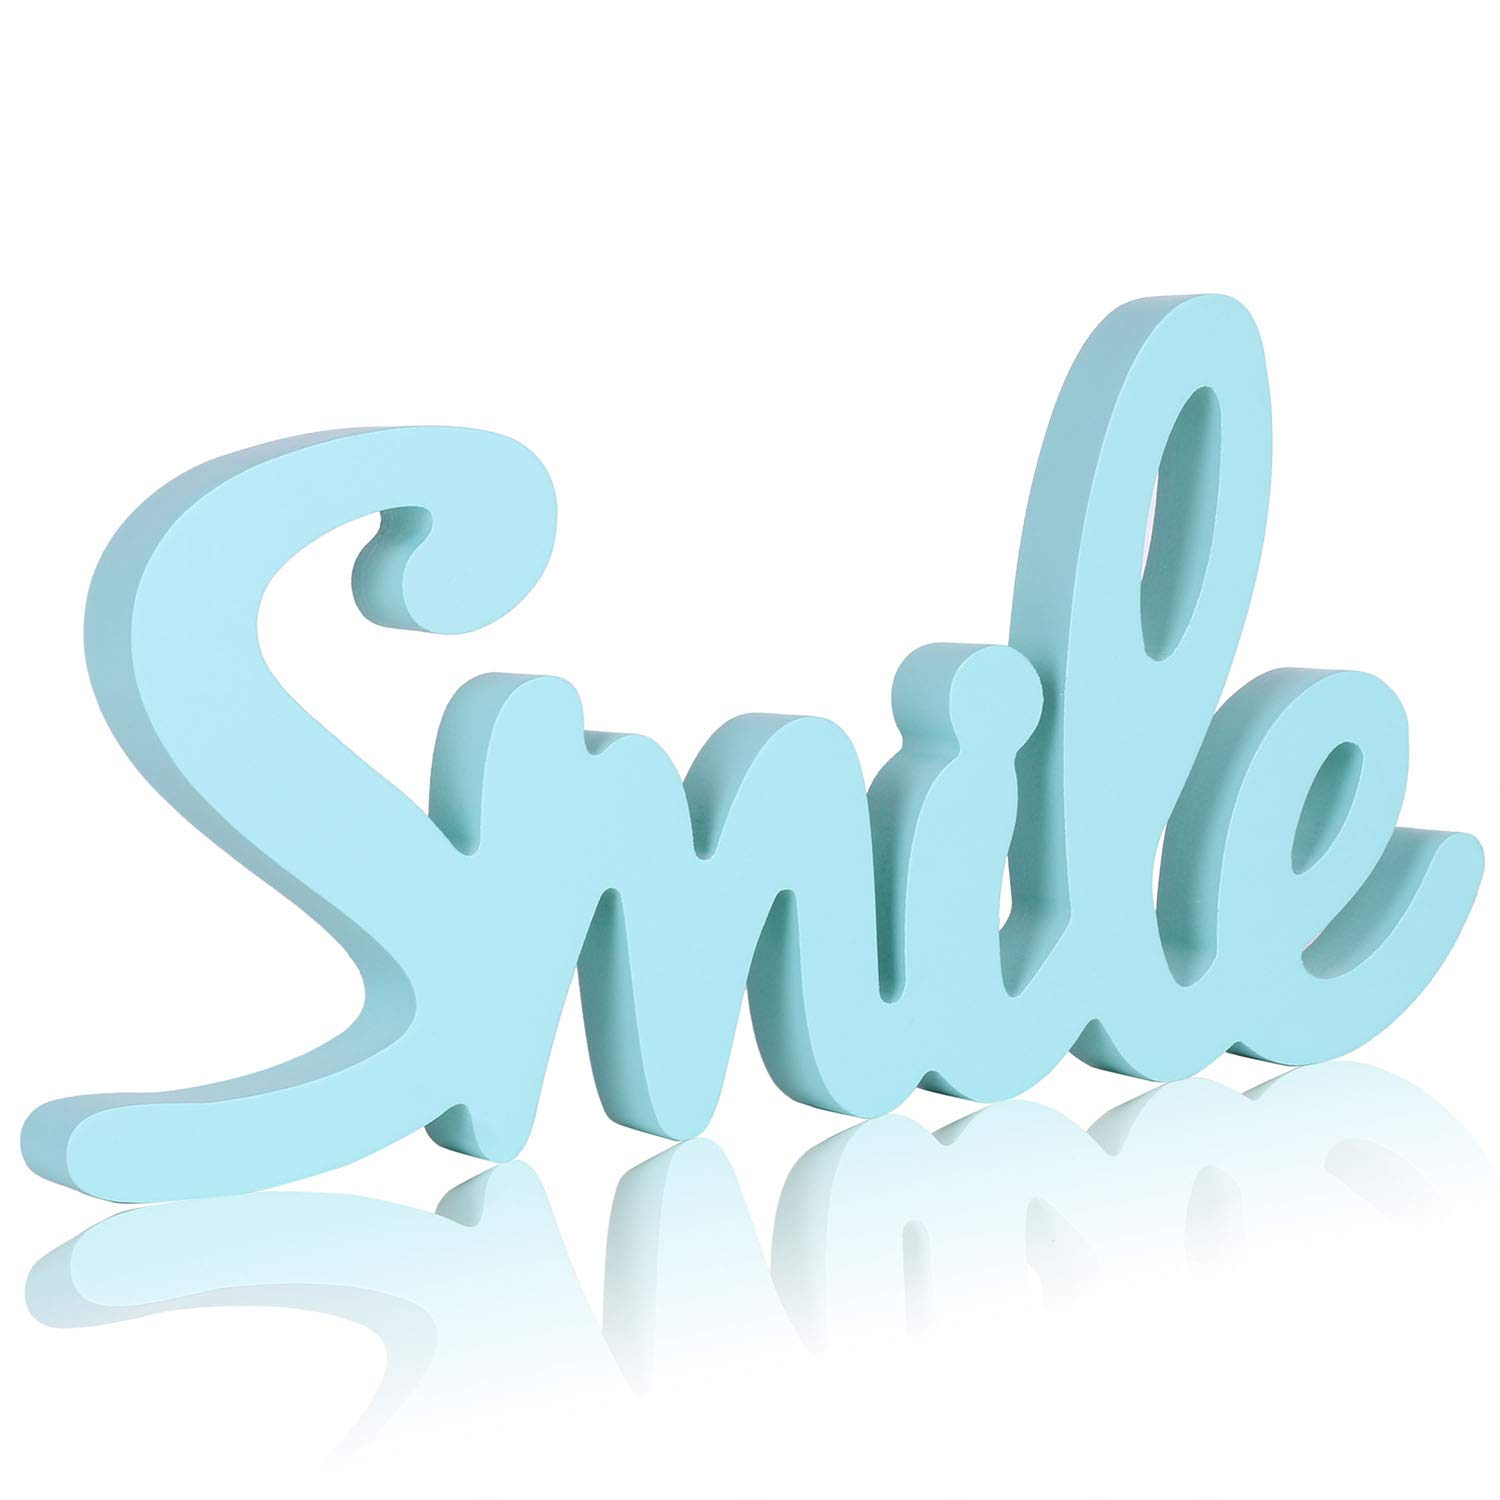 West Beauty Cutout Wood Word Sign Decor, Wood Script Smile Words Decorative Sign Ornament for Desk, Shelf, Cabinet,13.4 x 6.6 inches (Smile)